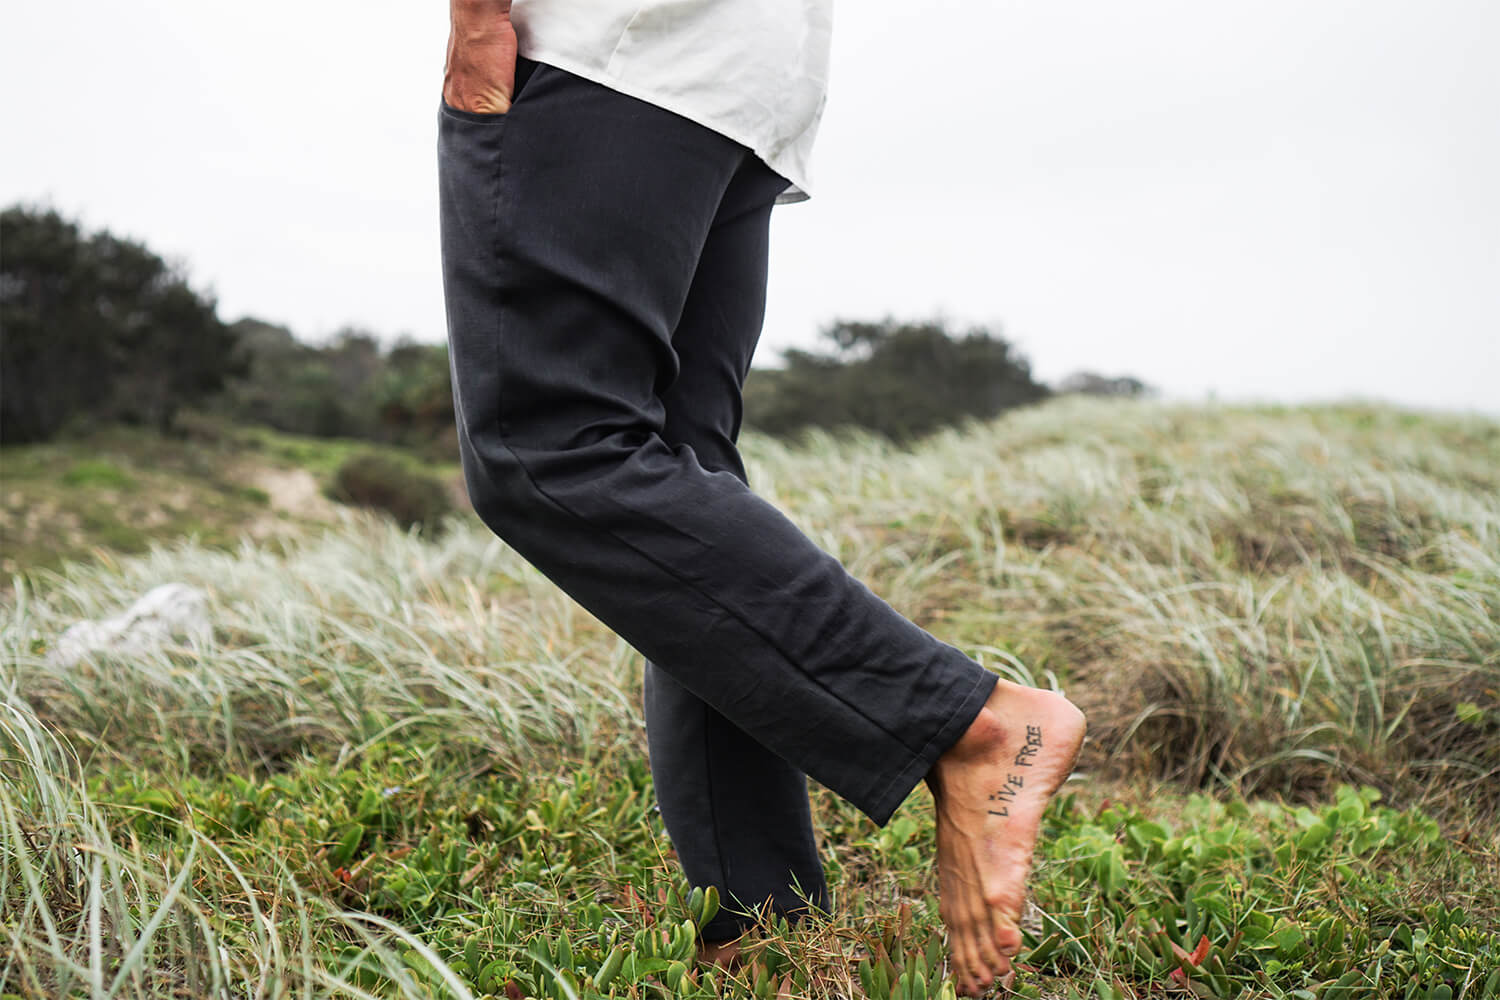 Tasi Travels' Men's Charcoal Roamer Pants are handmade from a sustainable Tencel & hemp blend